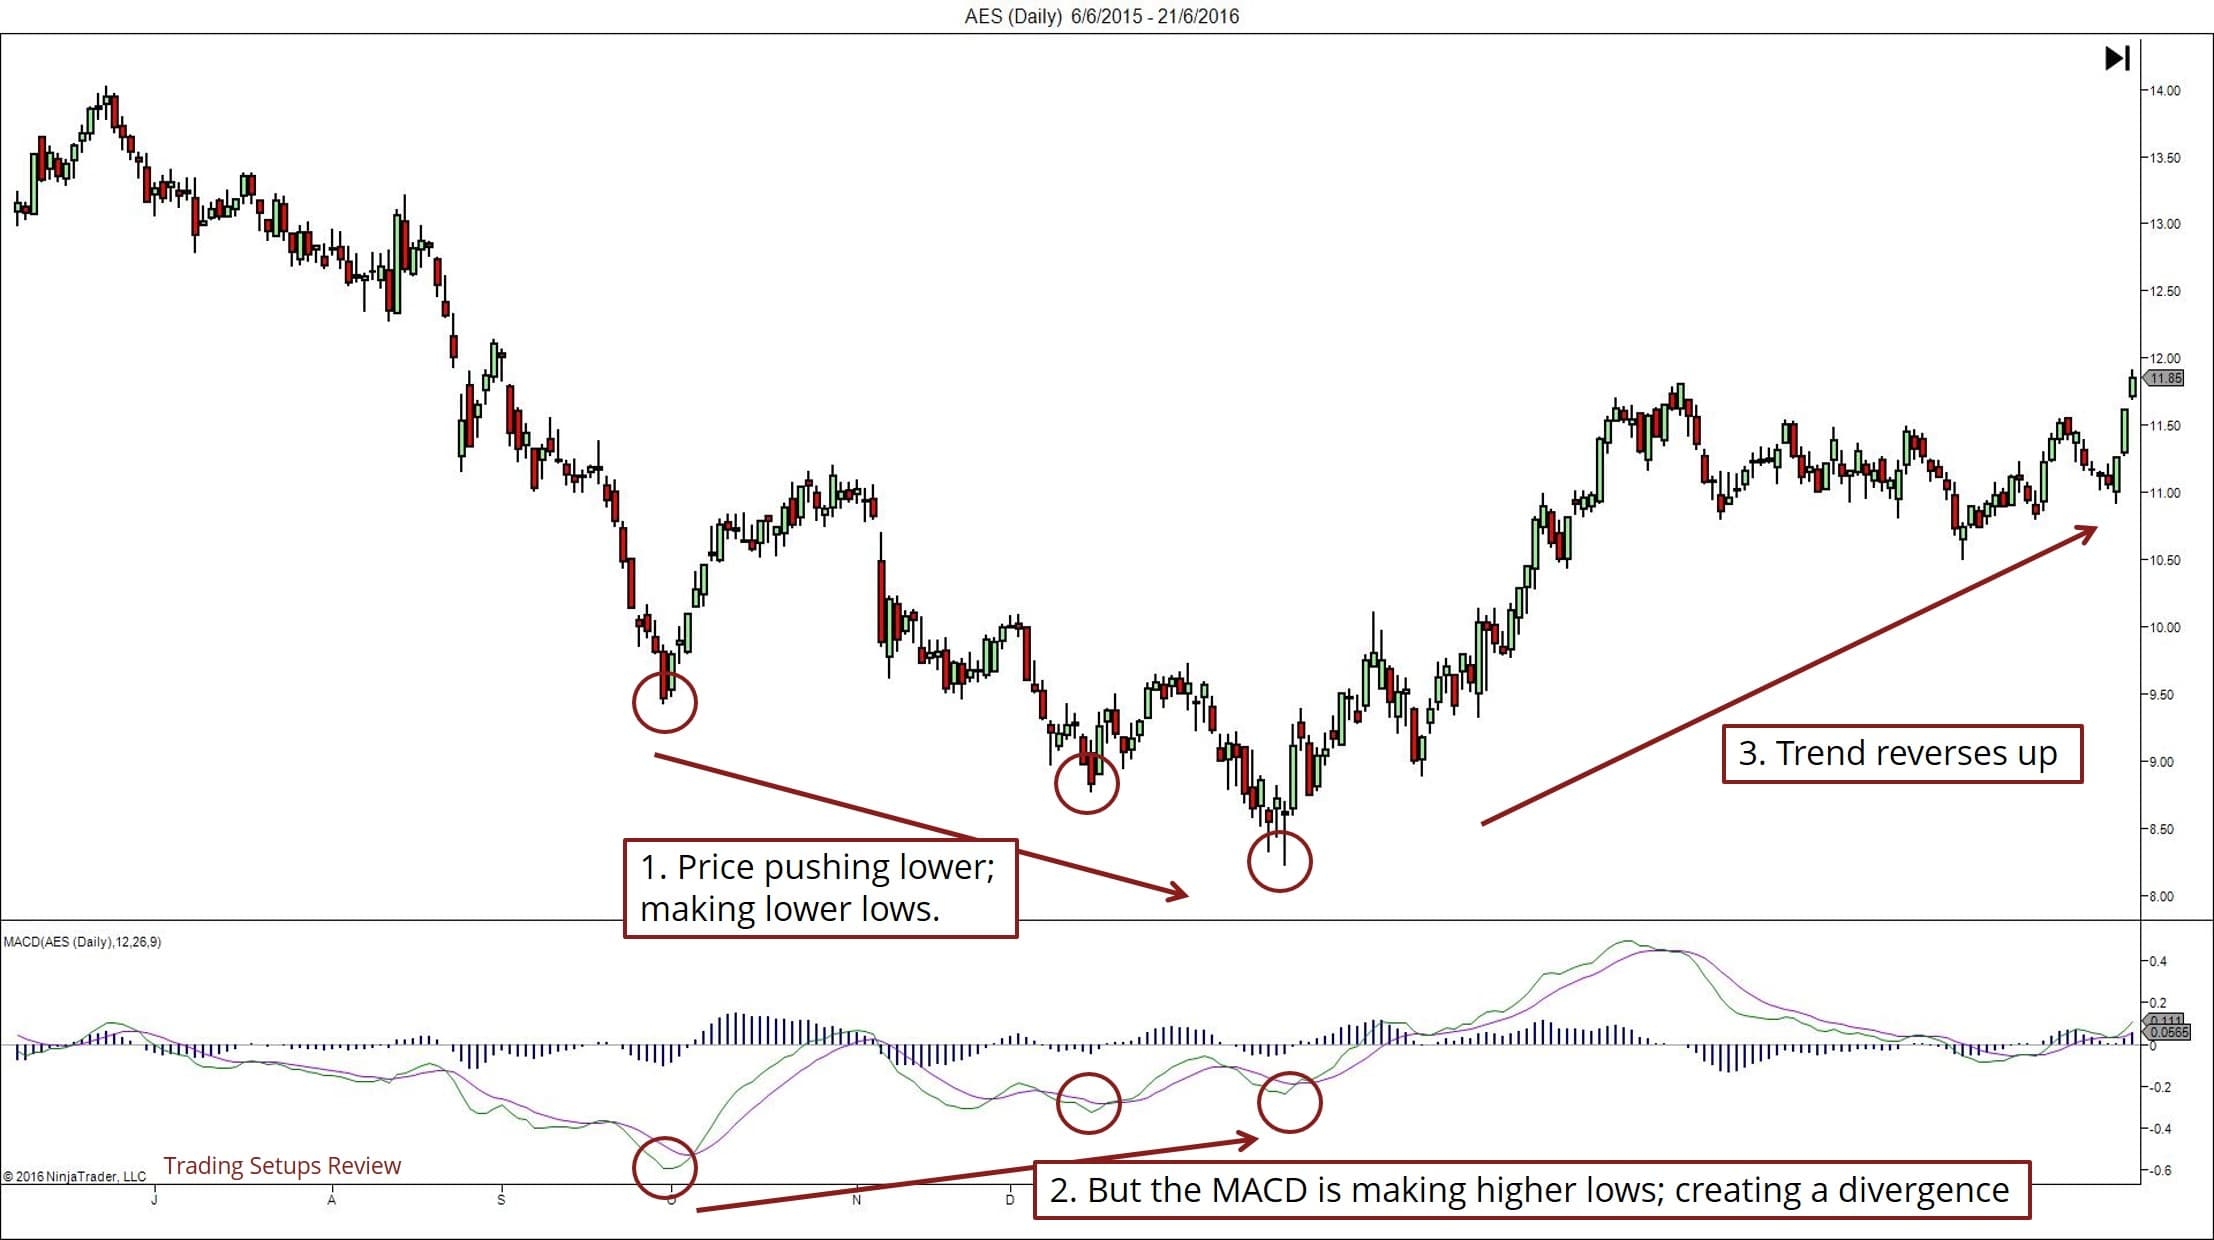 Finding Reversals With MACD Divergence